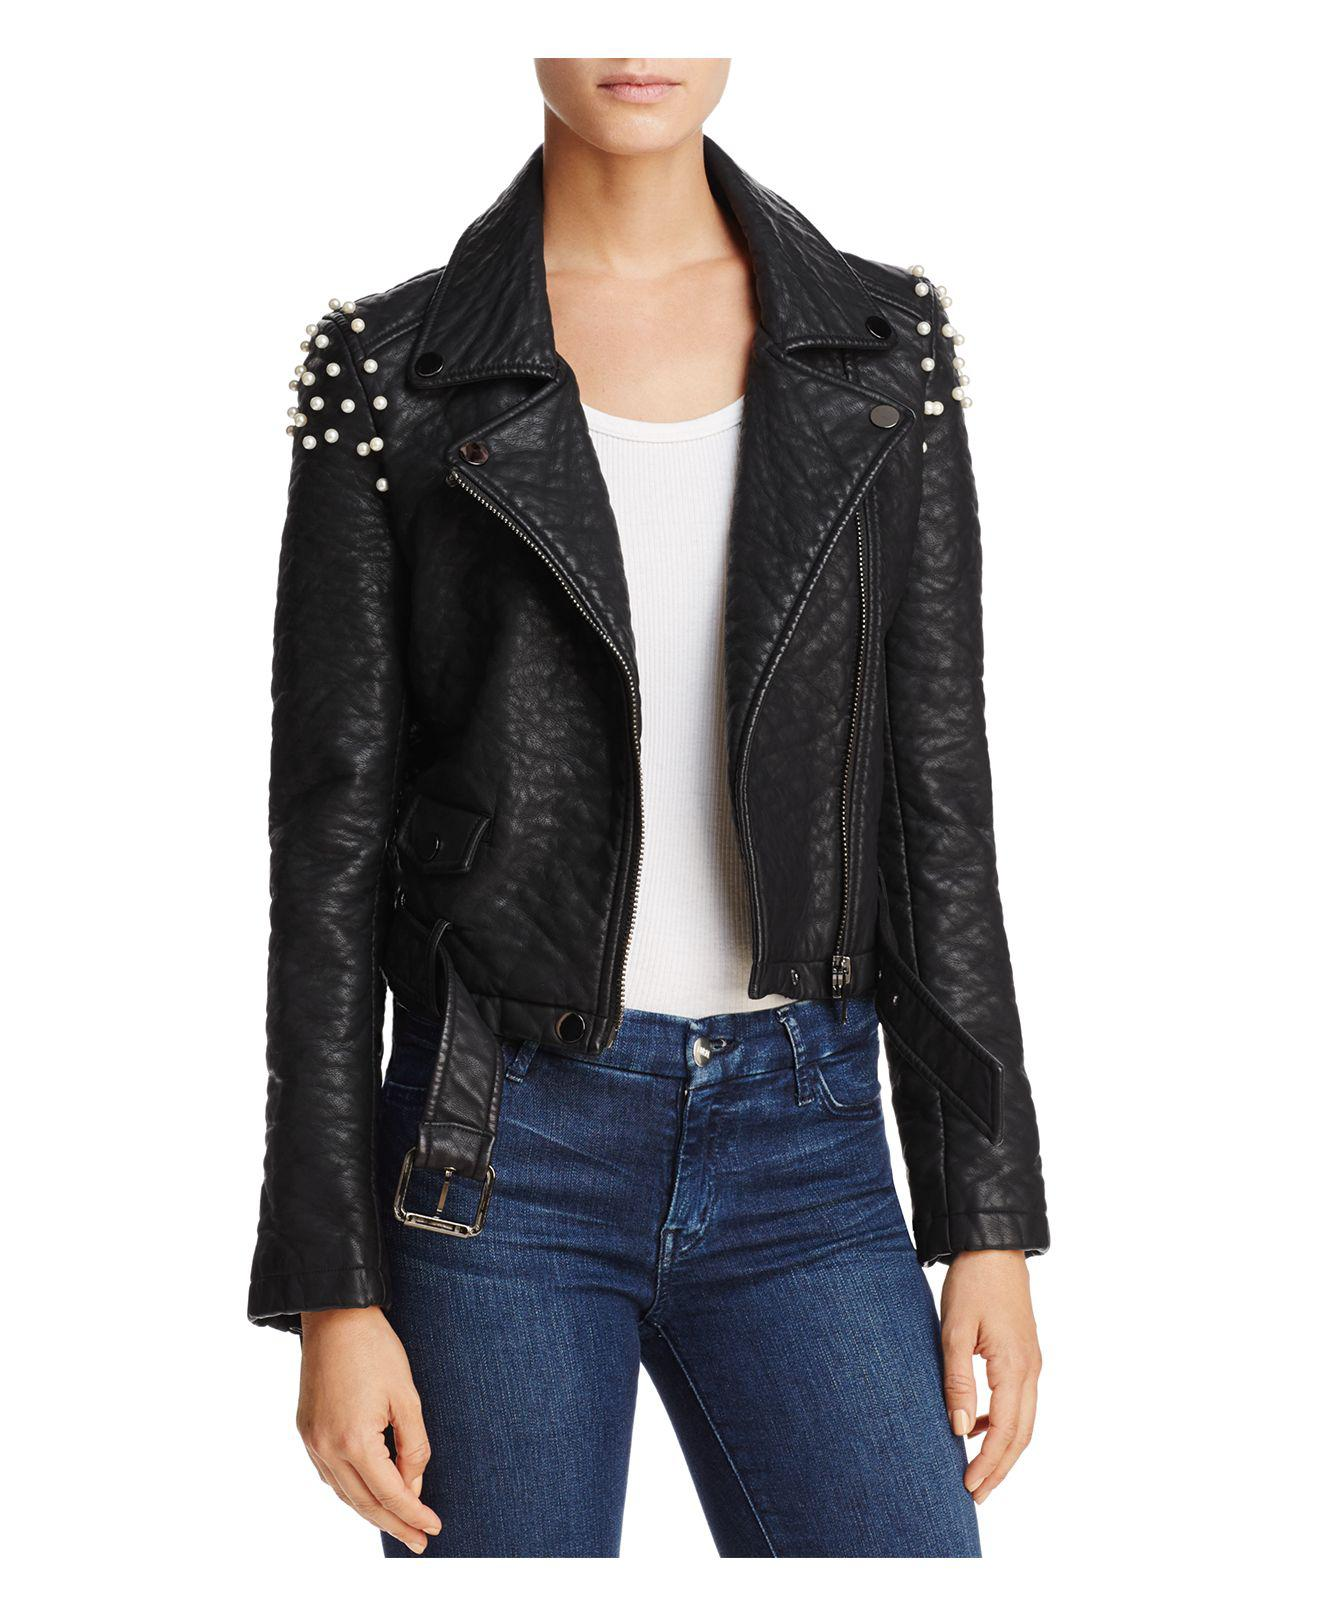 Joe S Jeans Taylor Embellished Faux Leather Motorcycle